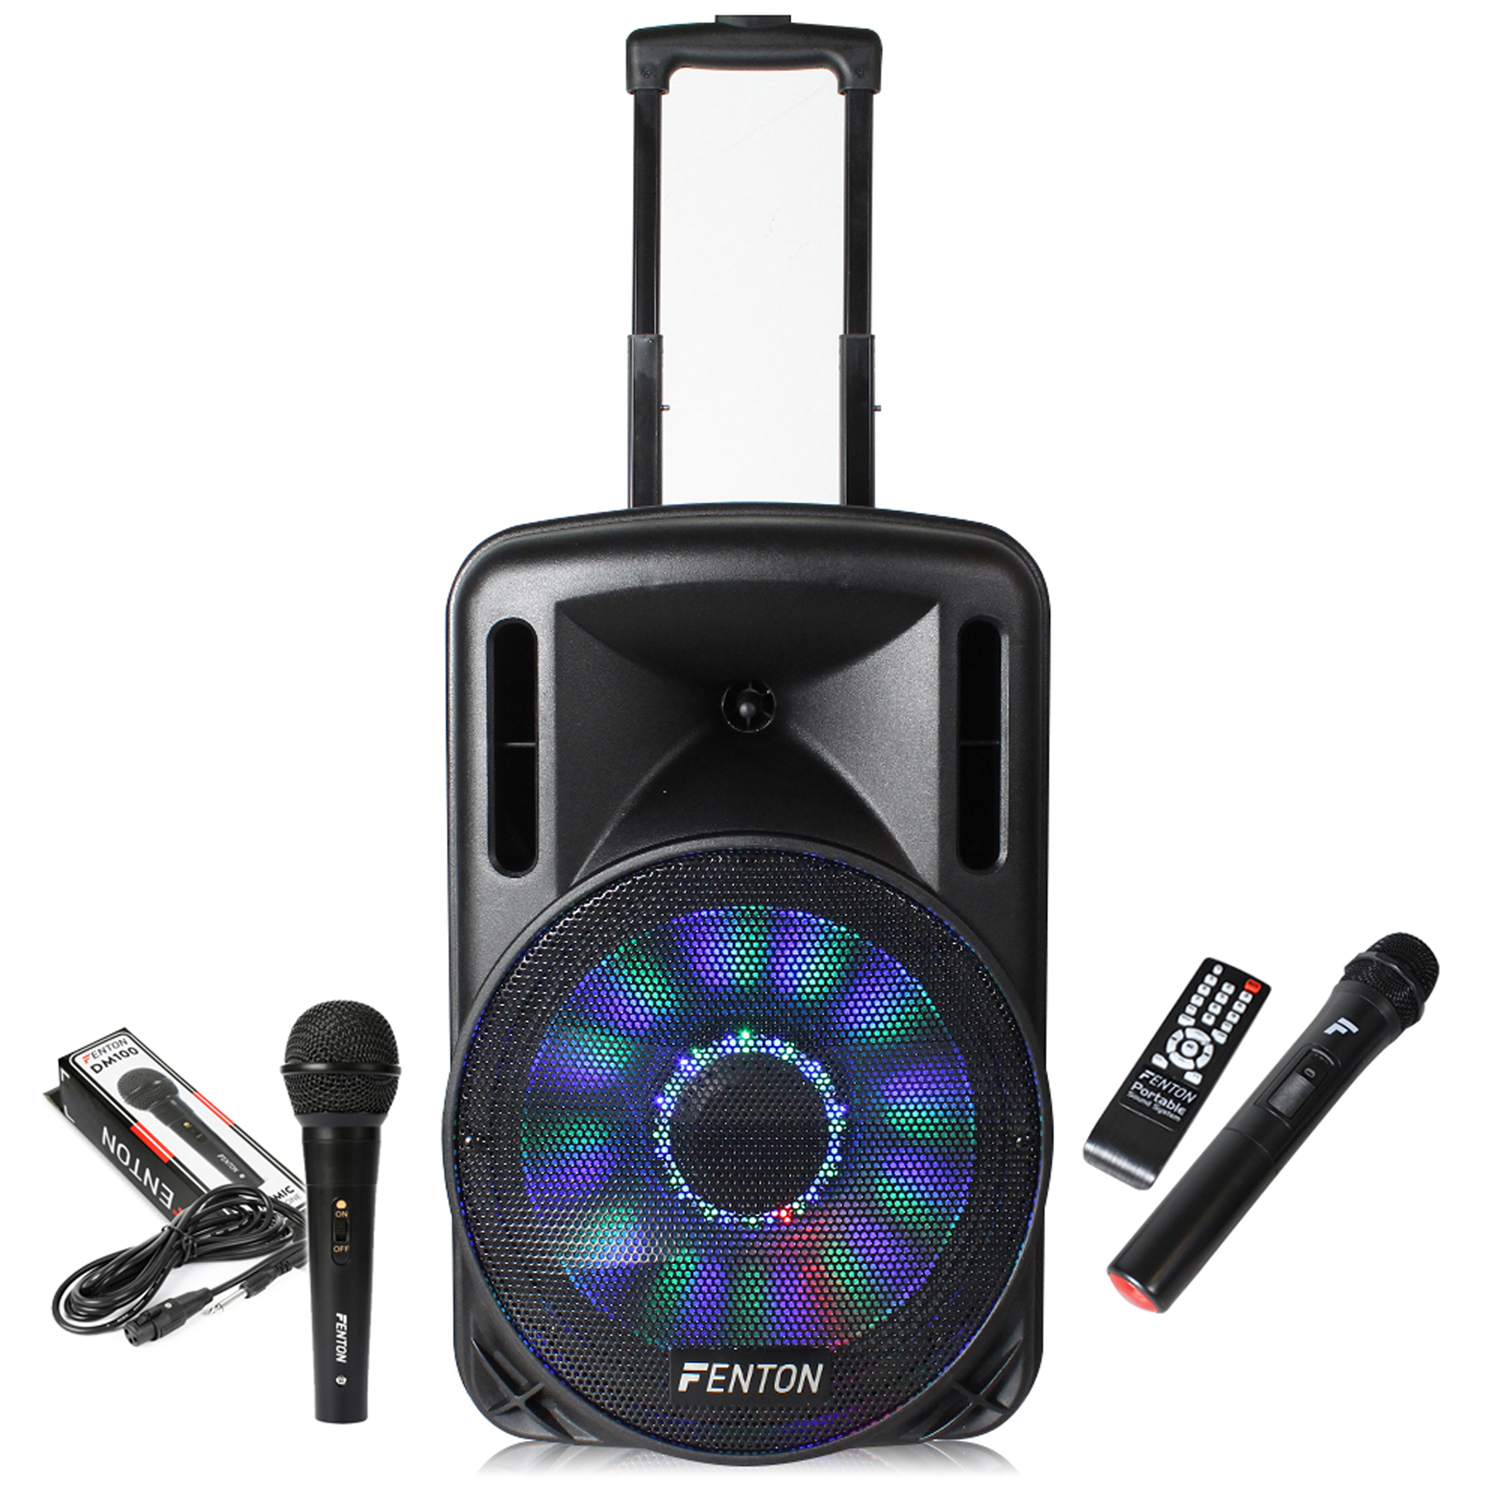 Fenton FT12LED Portable PA System with Wireless Mic & 2 Wired Mics